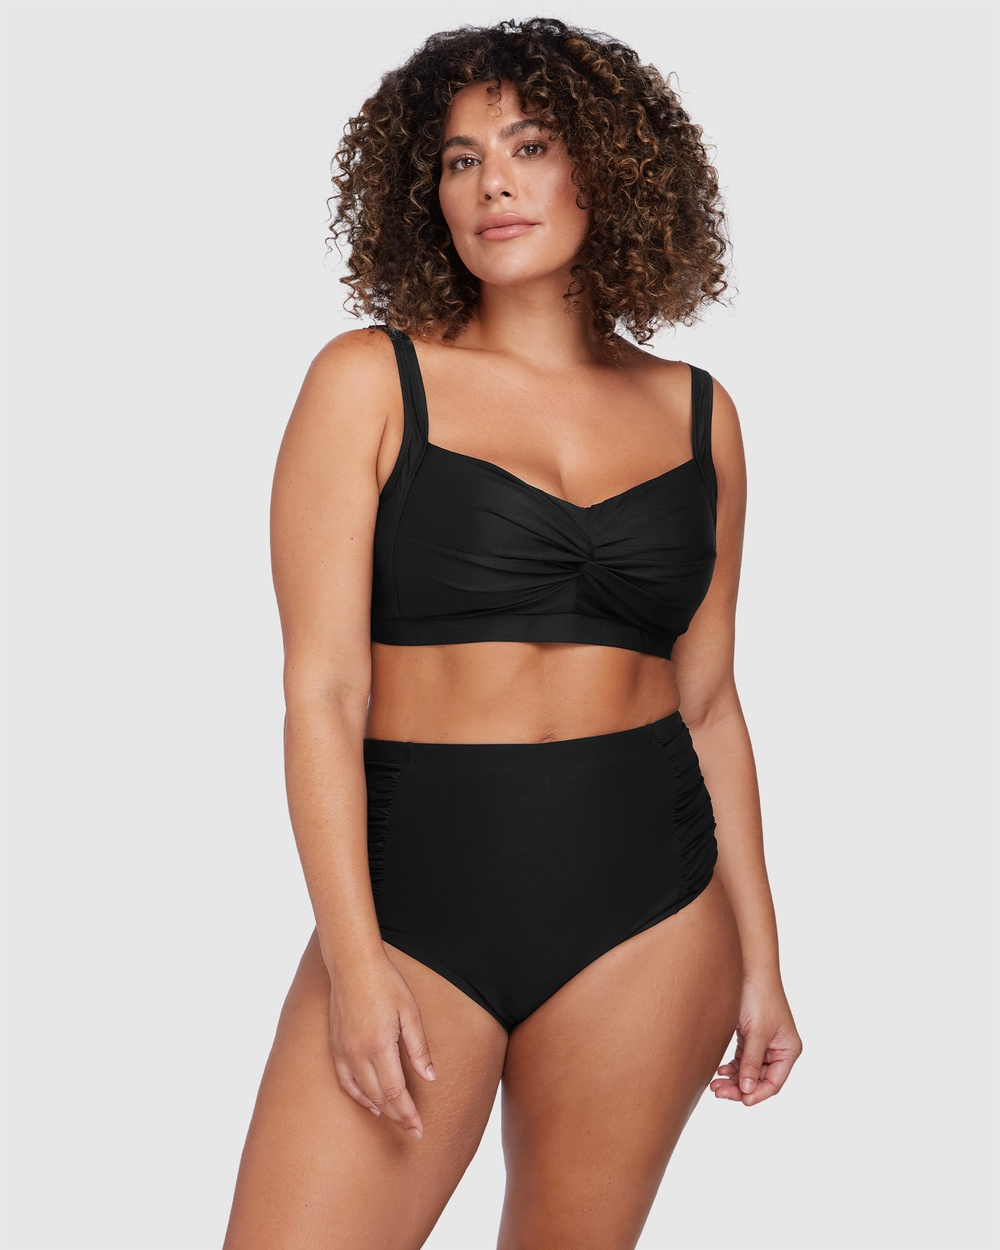 Artesands - Hues Rouched Side High Waist Pant BLACK - Swimwear (BLACK) Hues Rouched Side High Waist Pant BLACK